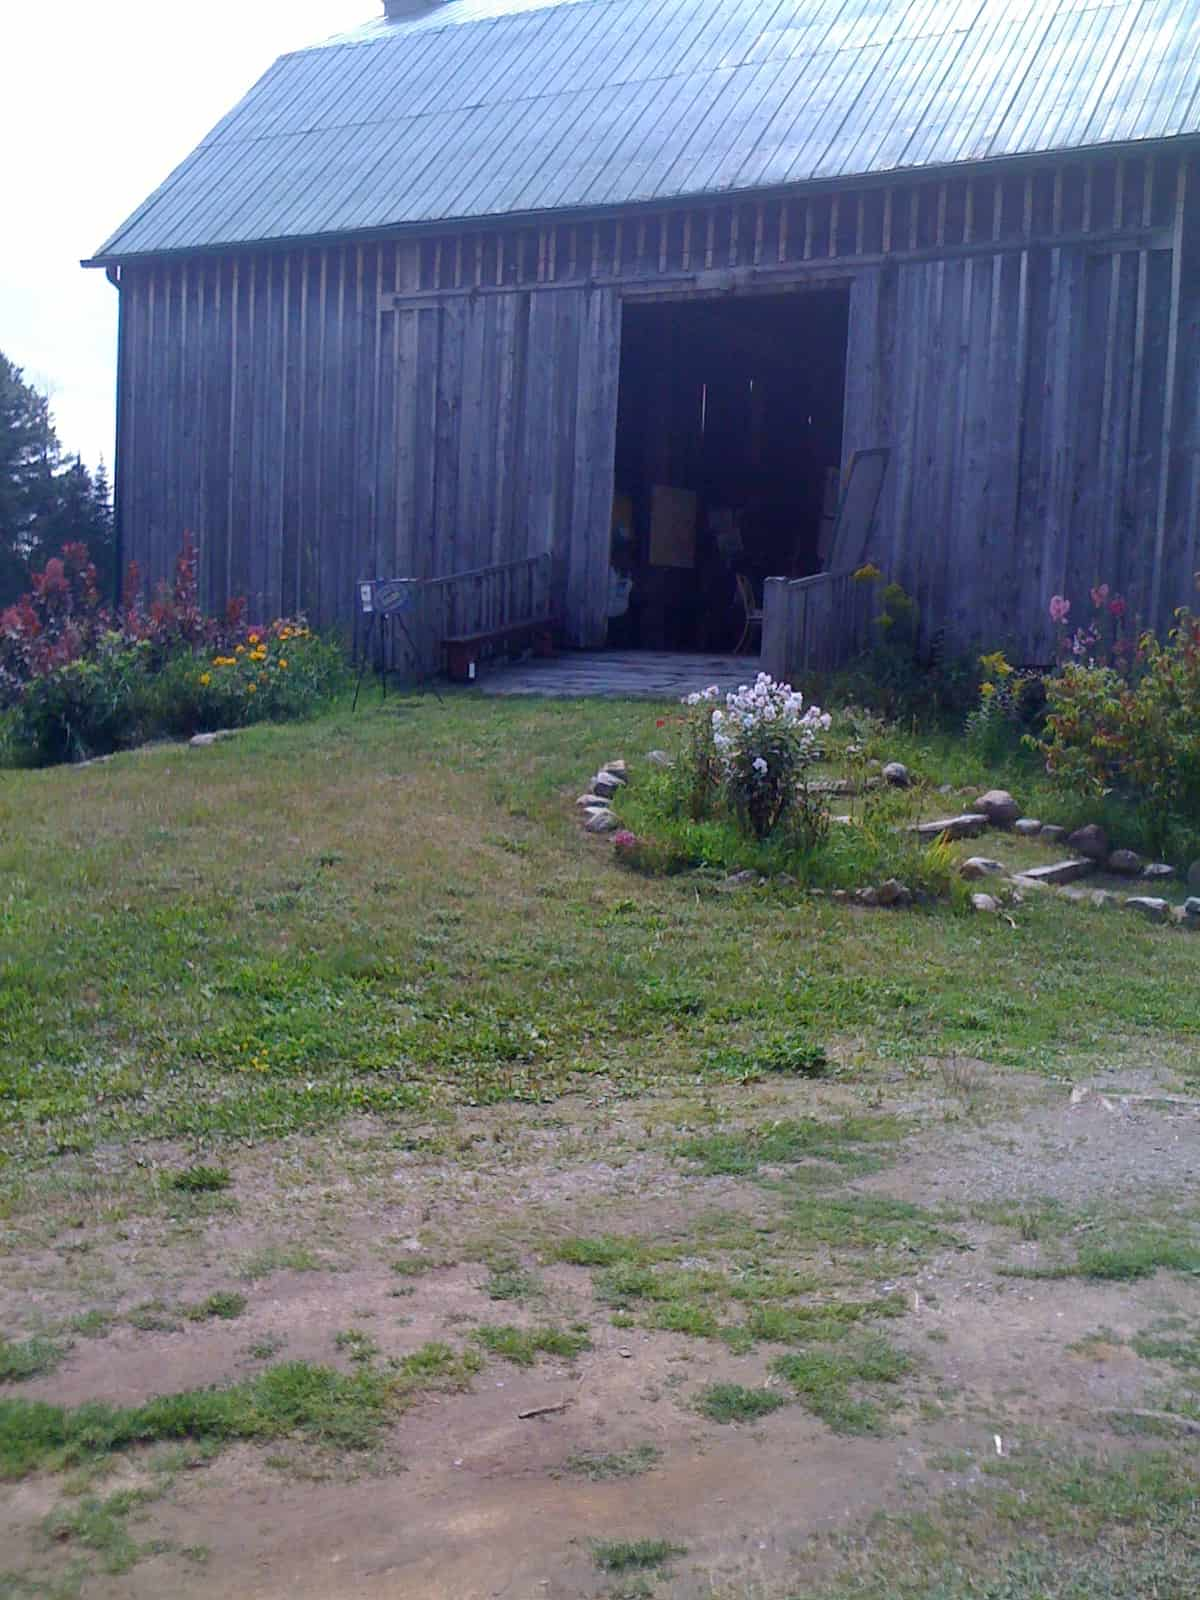 Organic Farm Uses Crowdfunding to Reach Out to Free Range Customers